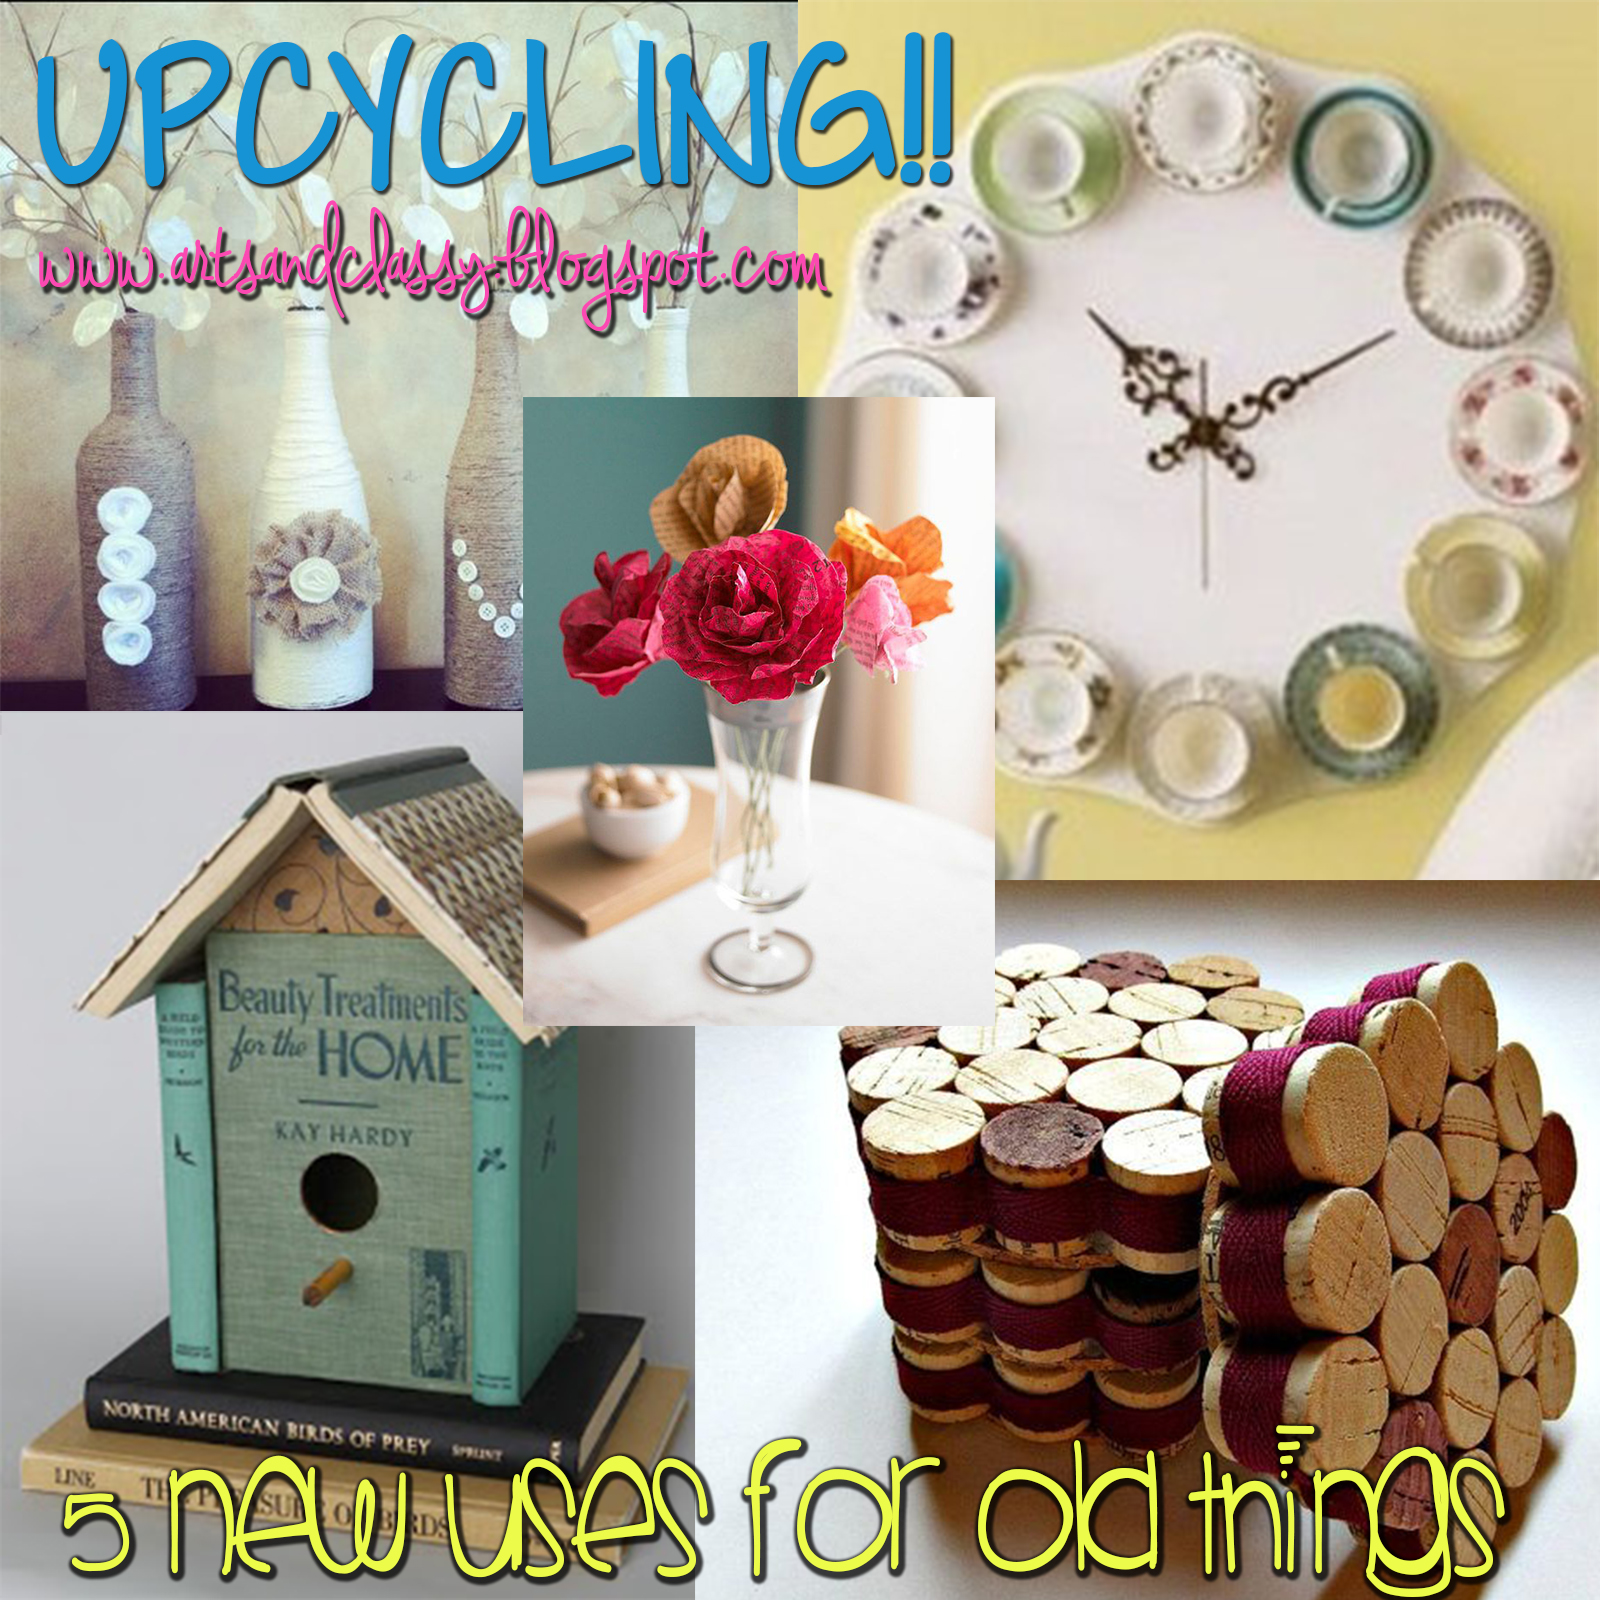 upcycling ideas for home 5 new uses for old things arts and classy